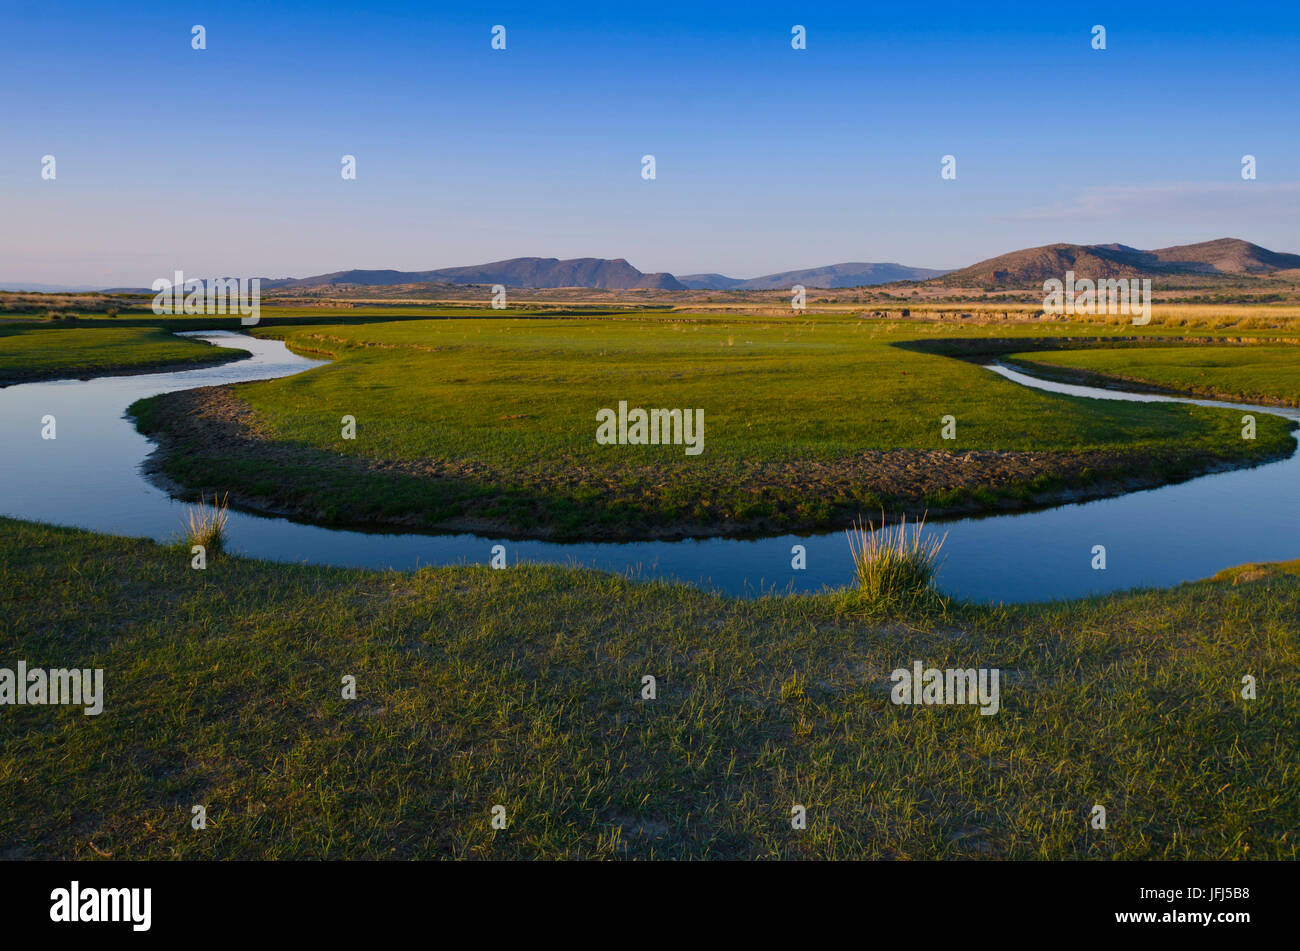 Mongolia, Central Asia, camp in the steppe scenery of Gurvanbulag, river bend Stock Photo